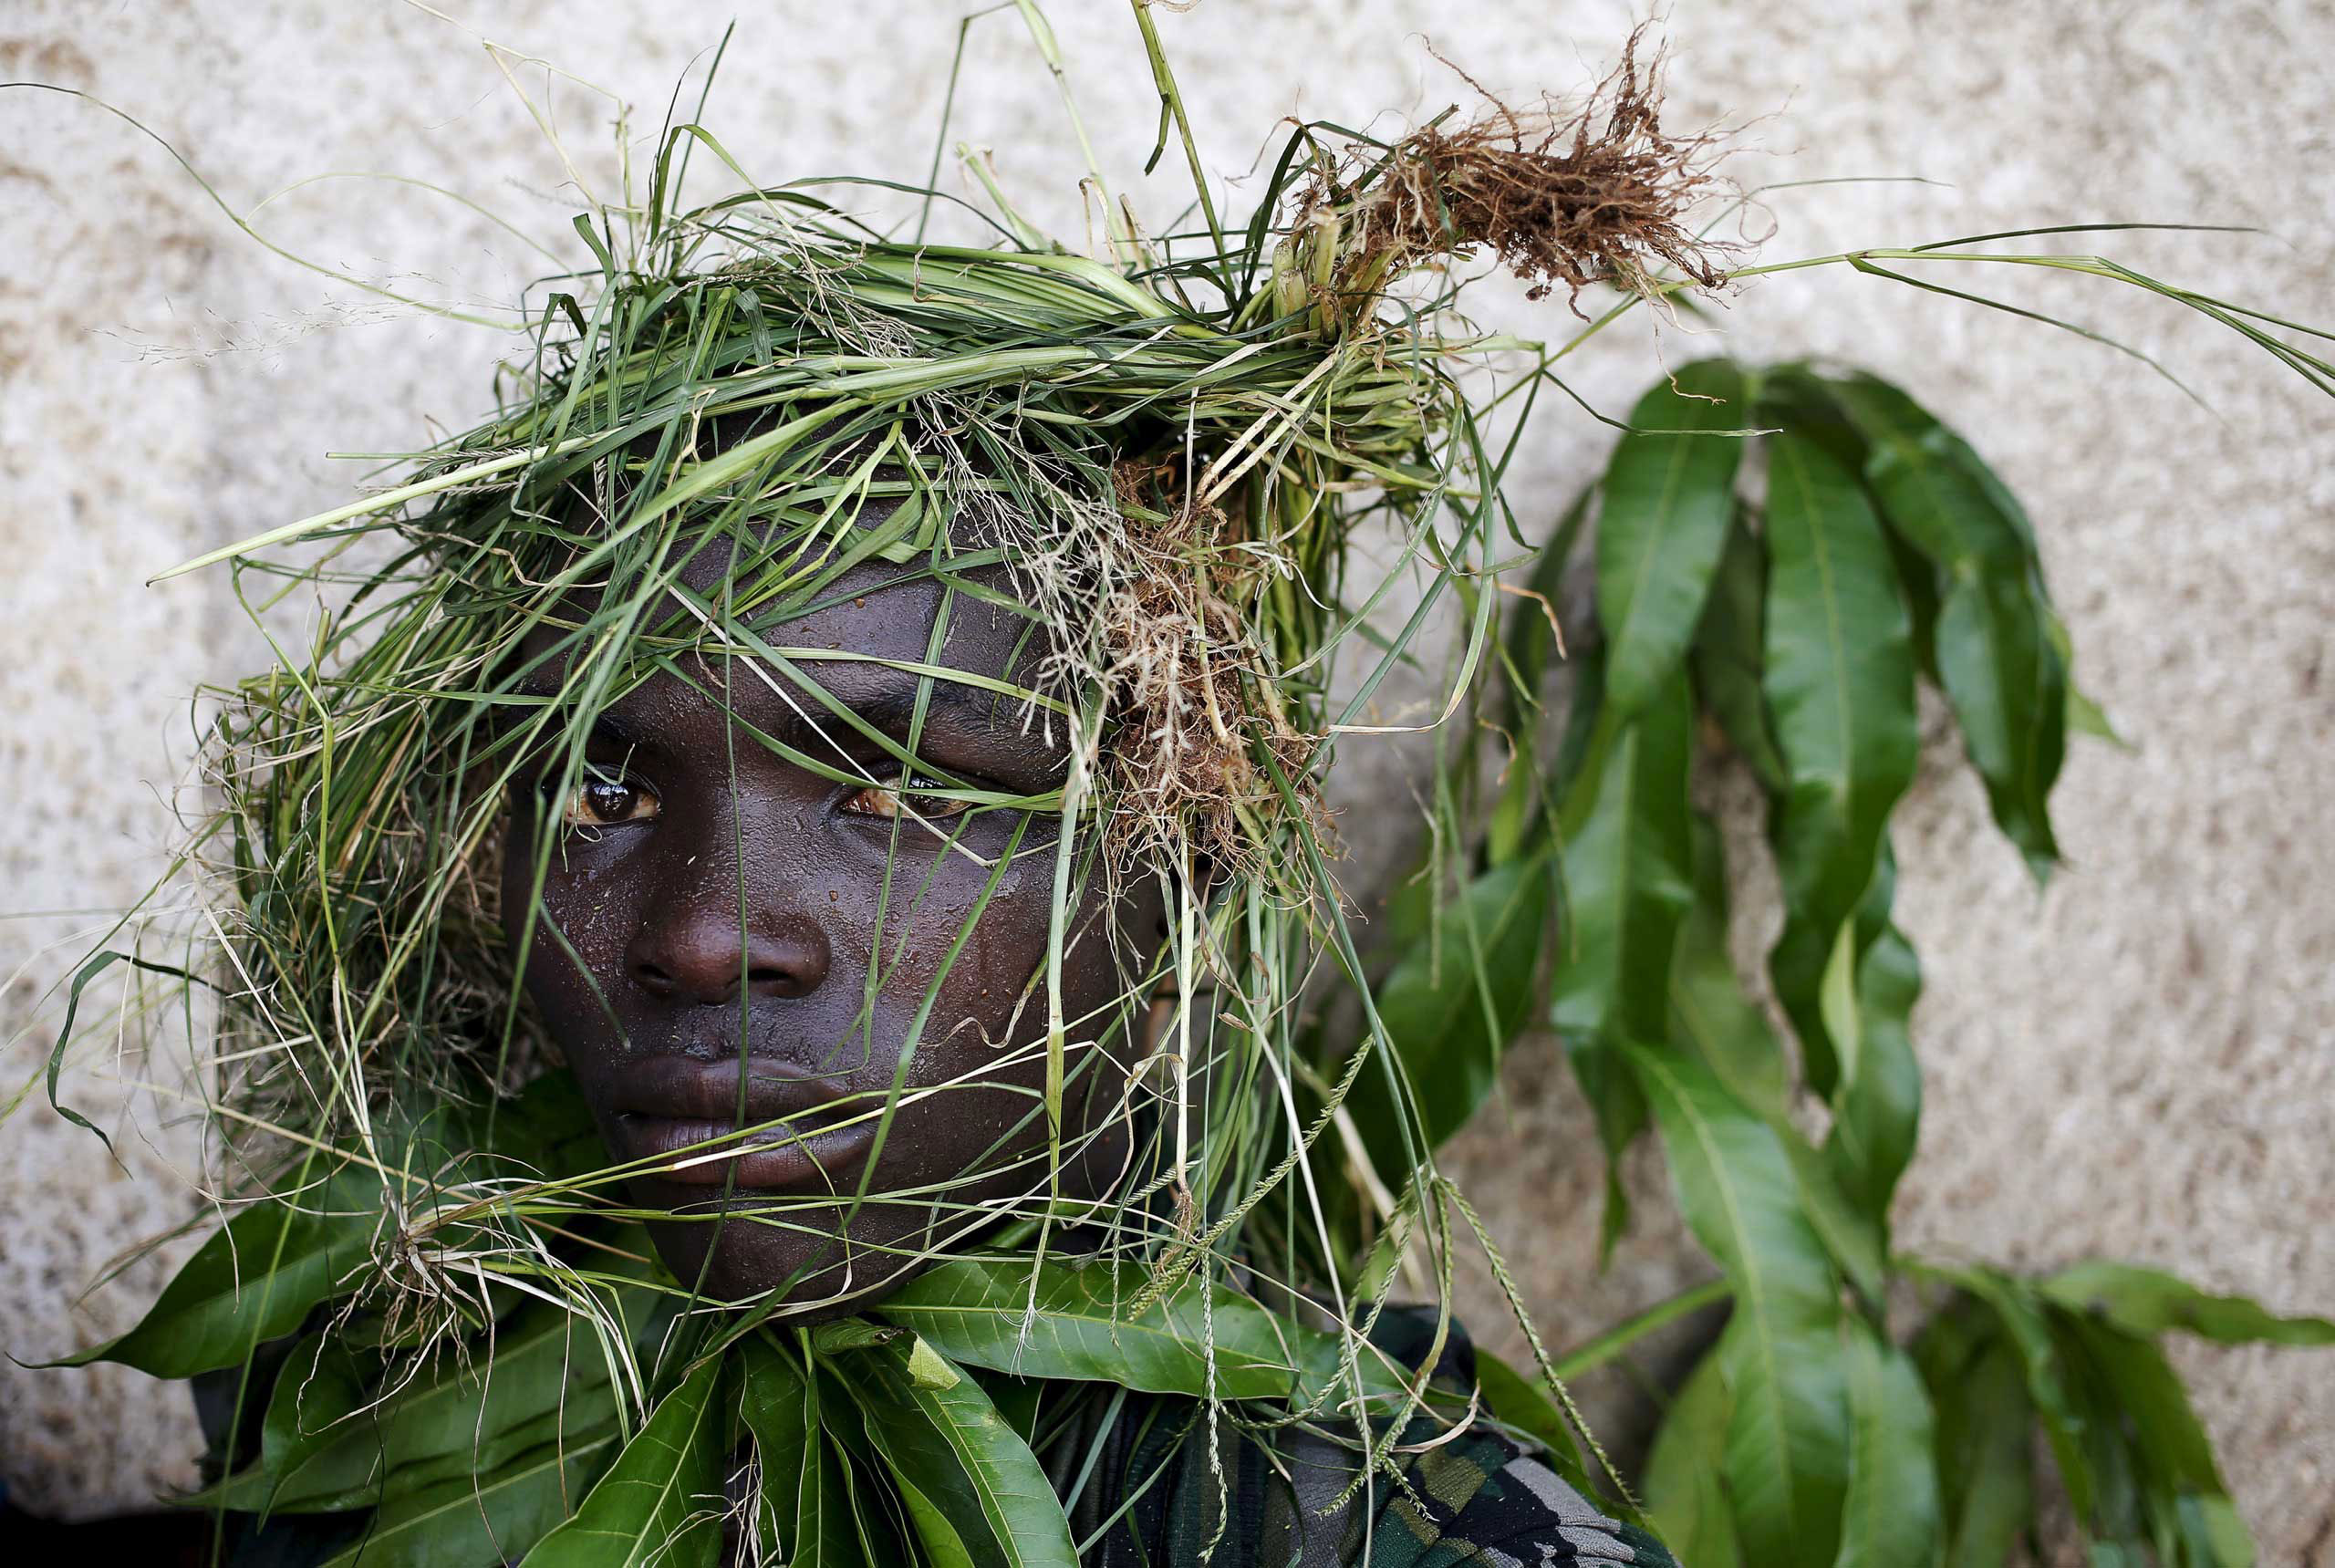 In this unranked gallery, TIME presents the top 100 photos of the yearA protester wears grass around his face to obscure his identity during a protest against President Pierre Nkurunziza's decision to run for a third term, in Bujumbura, Burundi. May 11, 2015.